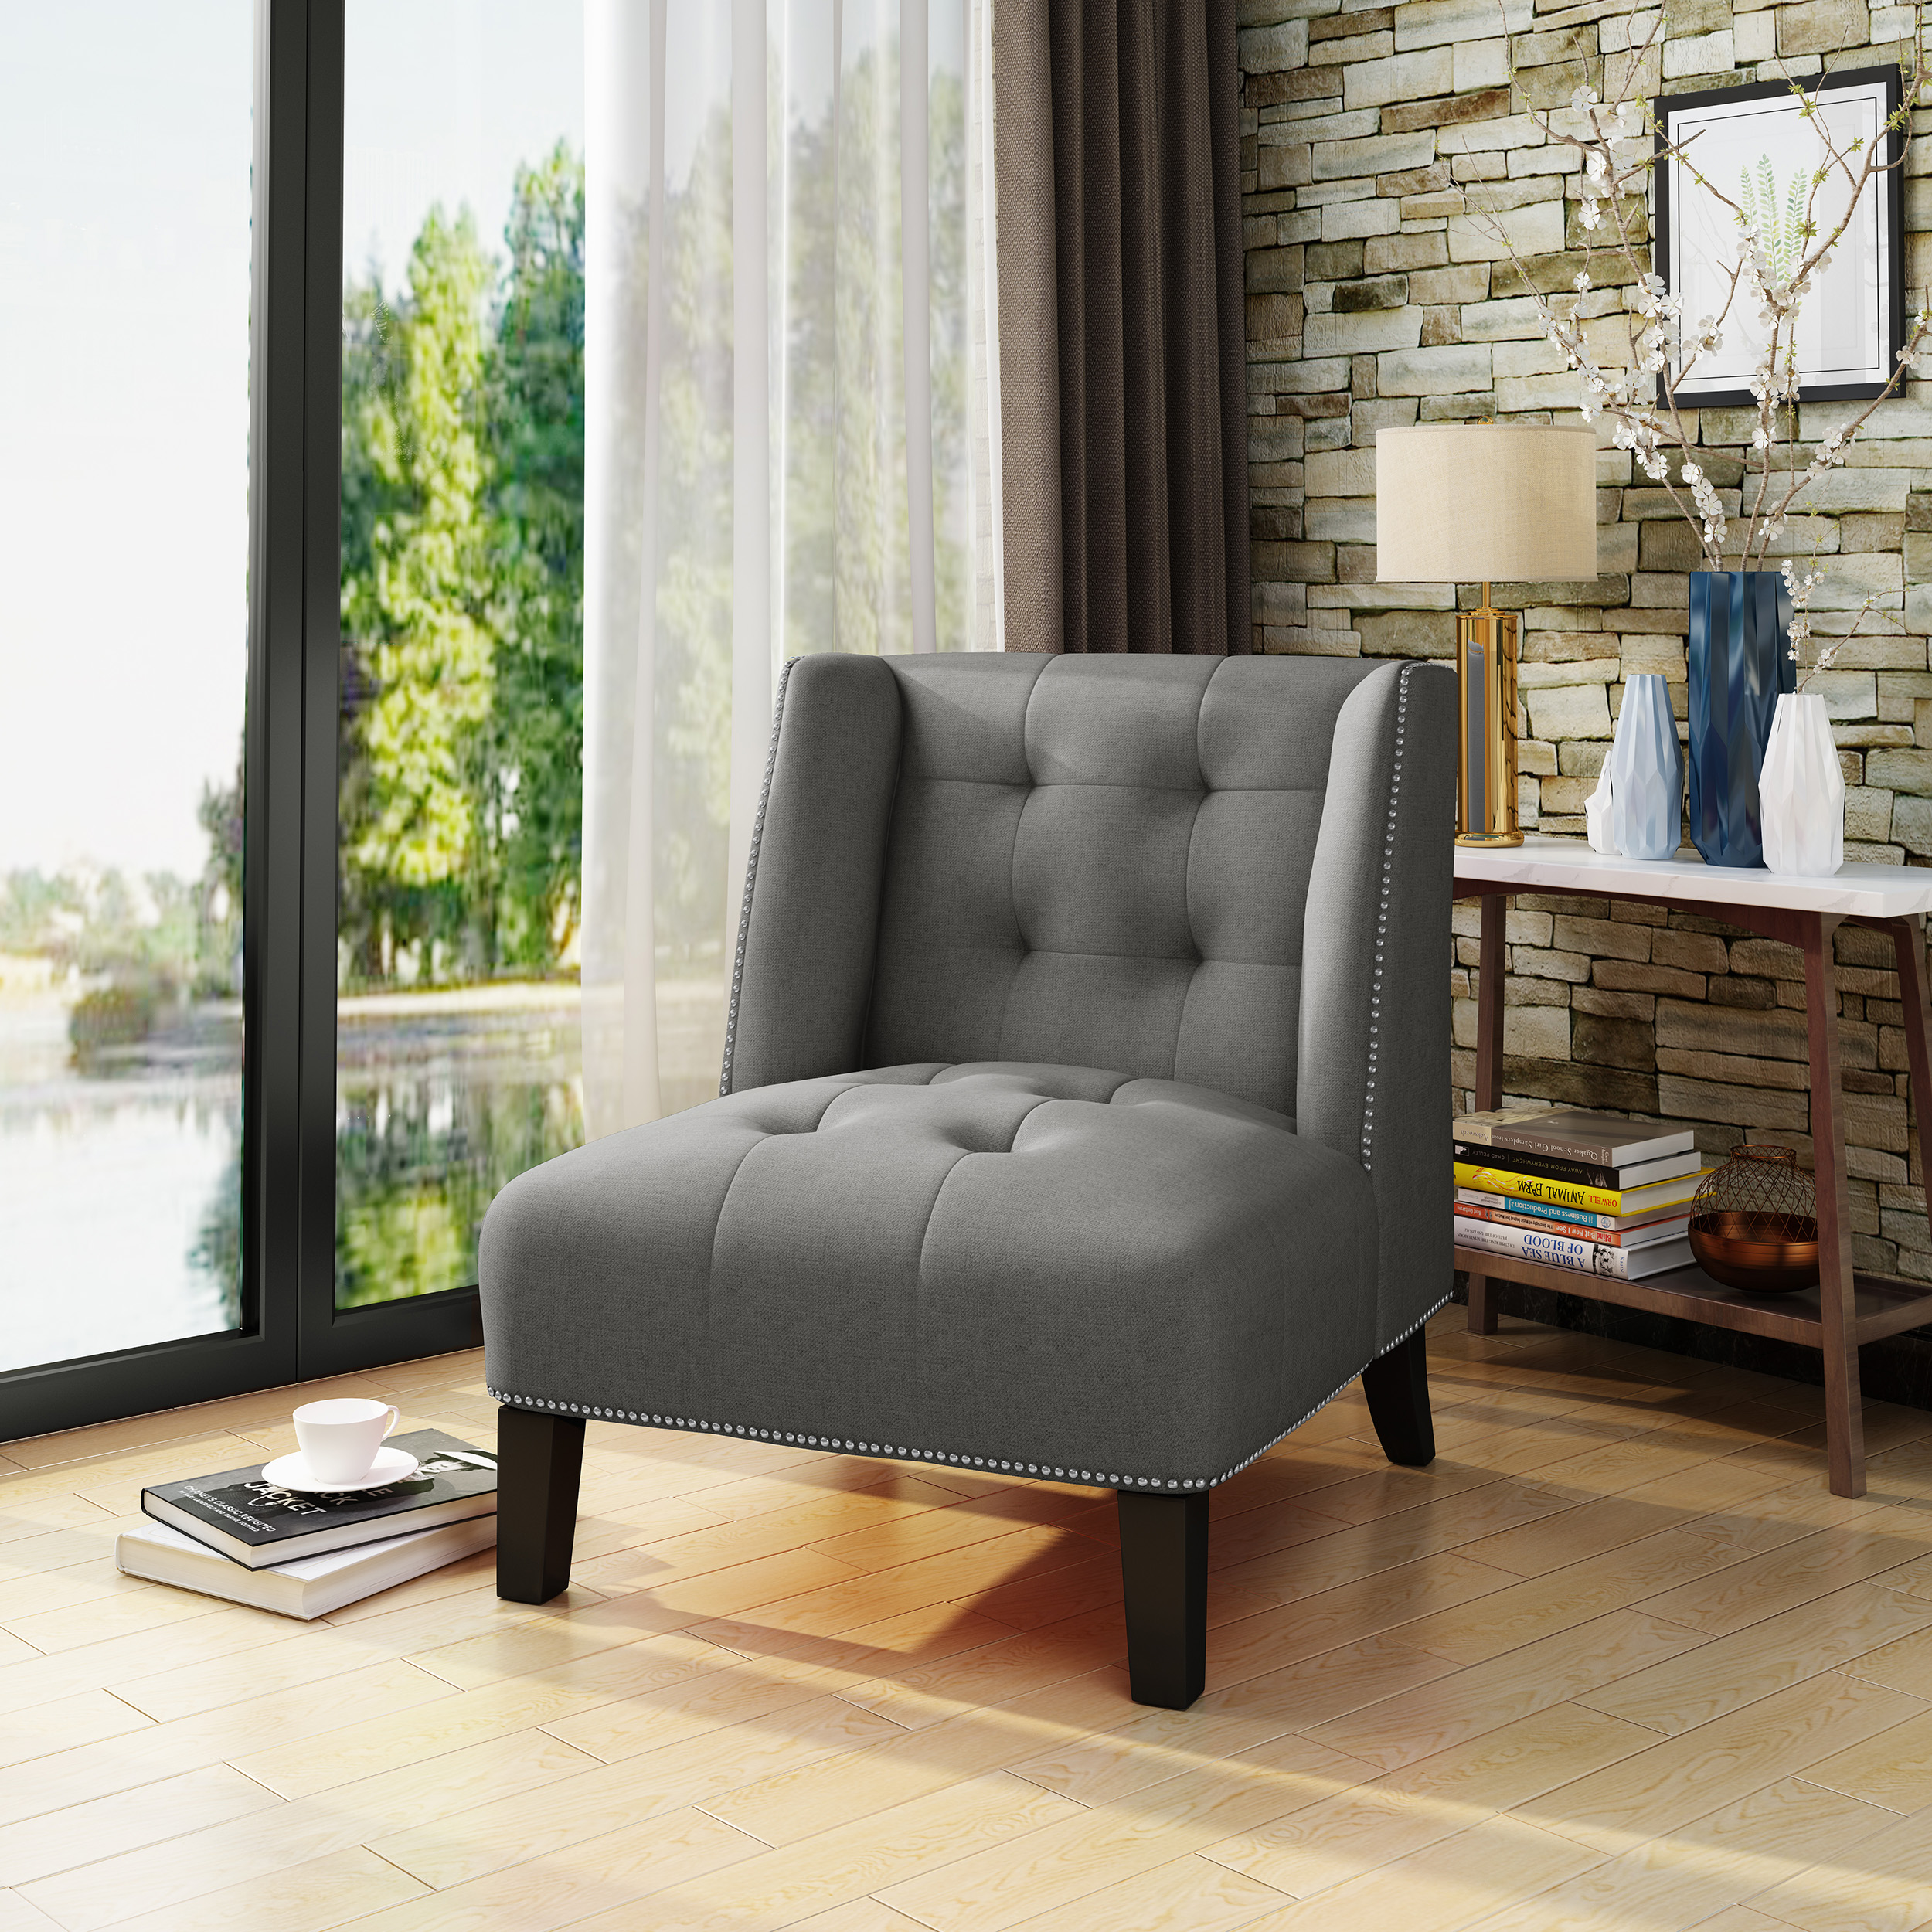 Noble House Tufted Wingback Fabric Slipper Chair,Dark Grey